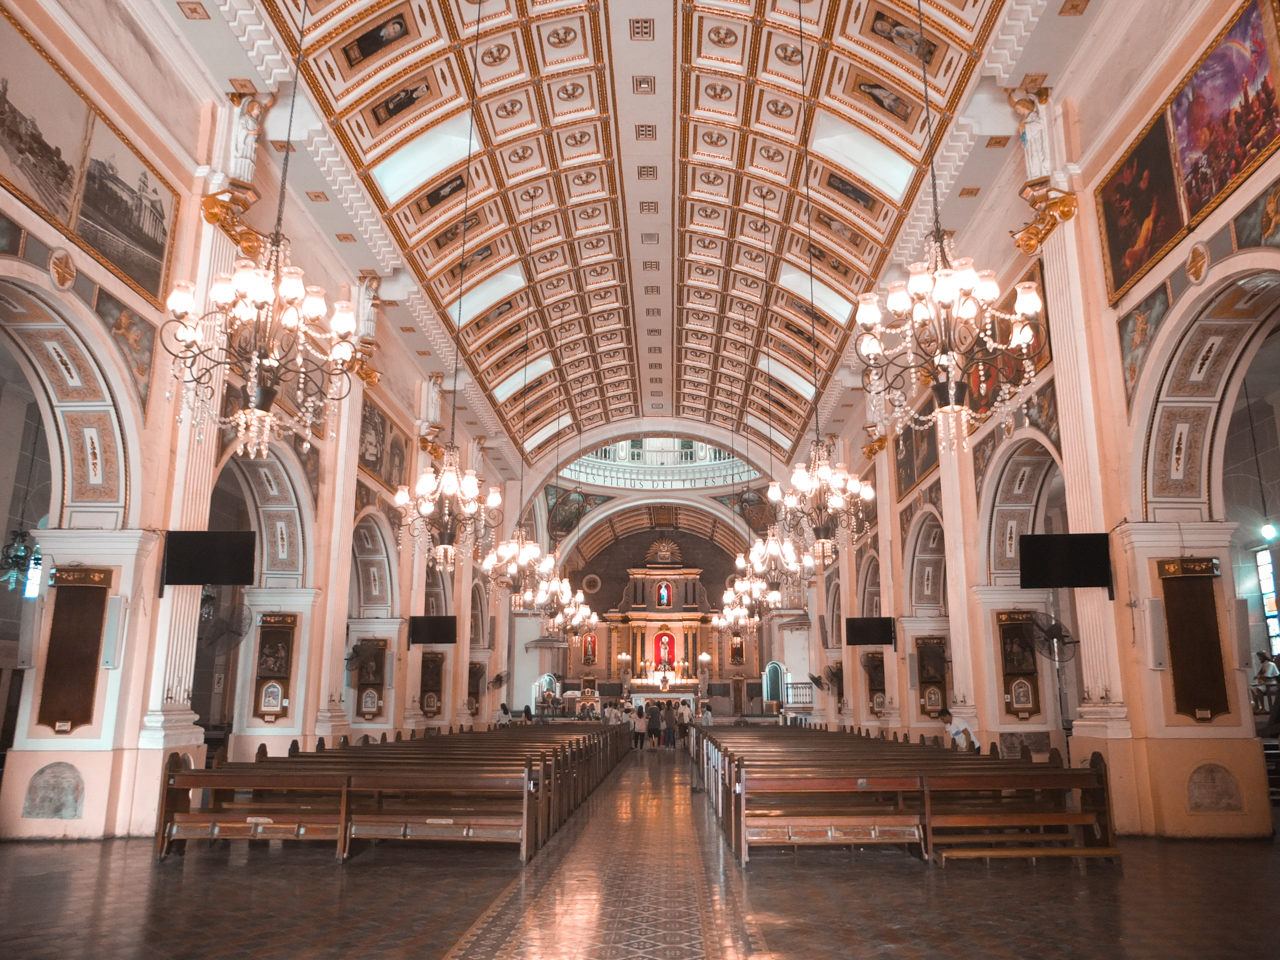 San Bartolome Church - https://thejerny.com